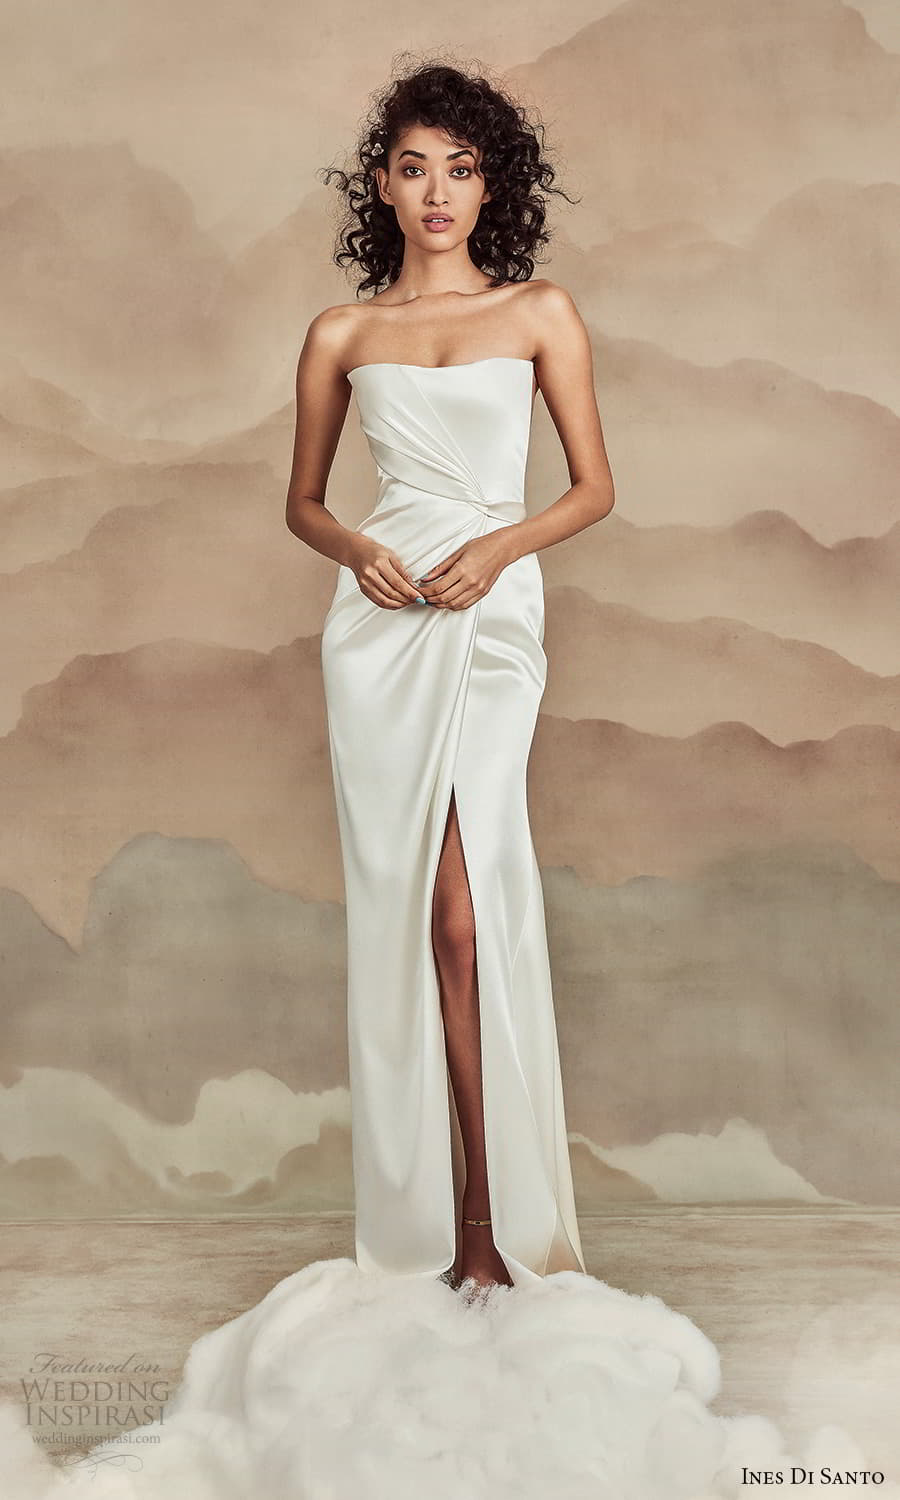 ines di santo spring 2022 bridal strapless straight across neckline clean minimalist sheath wedding dress (8) mv